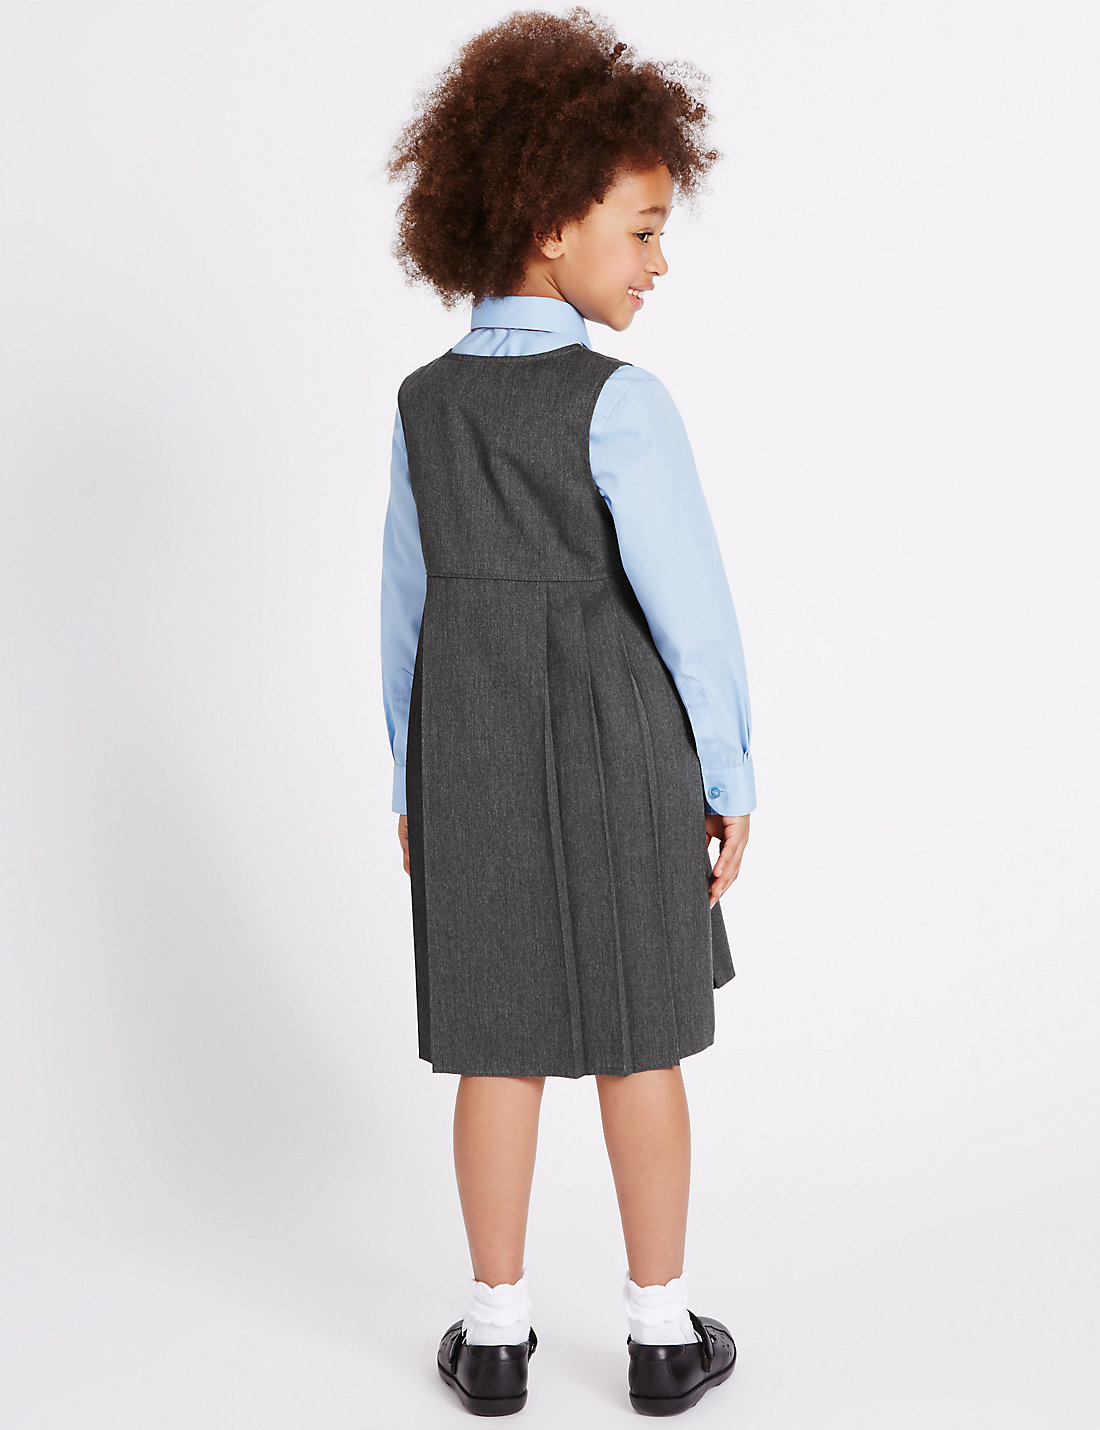 bf704dbdb Girls' Pinafore with Permanent Pleats – M & S Uniforms